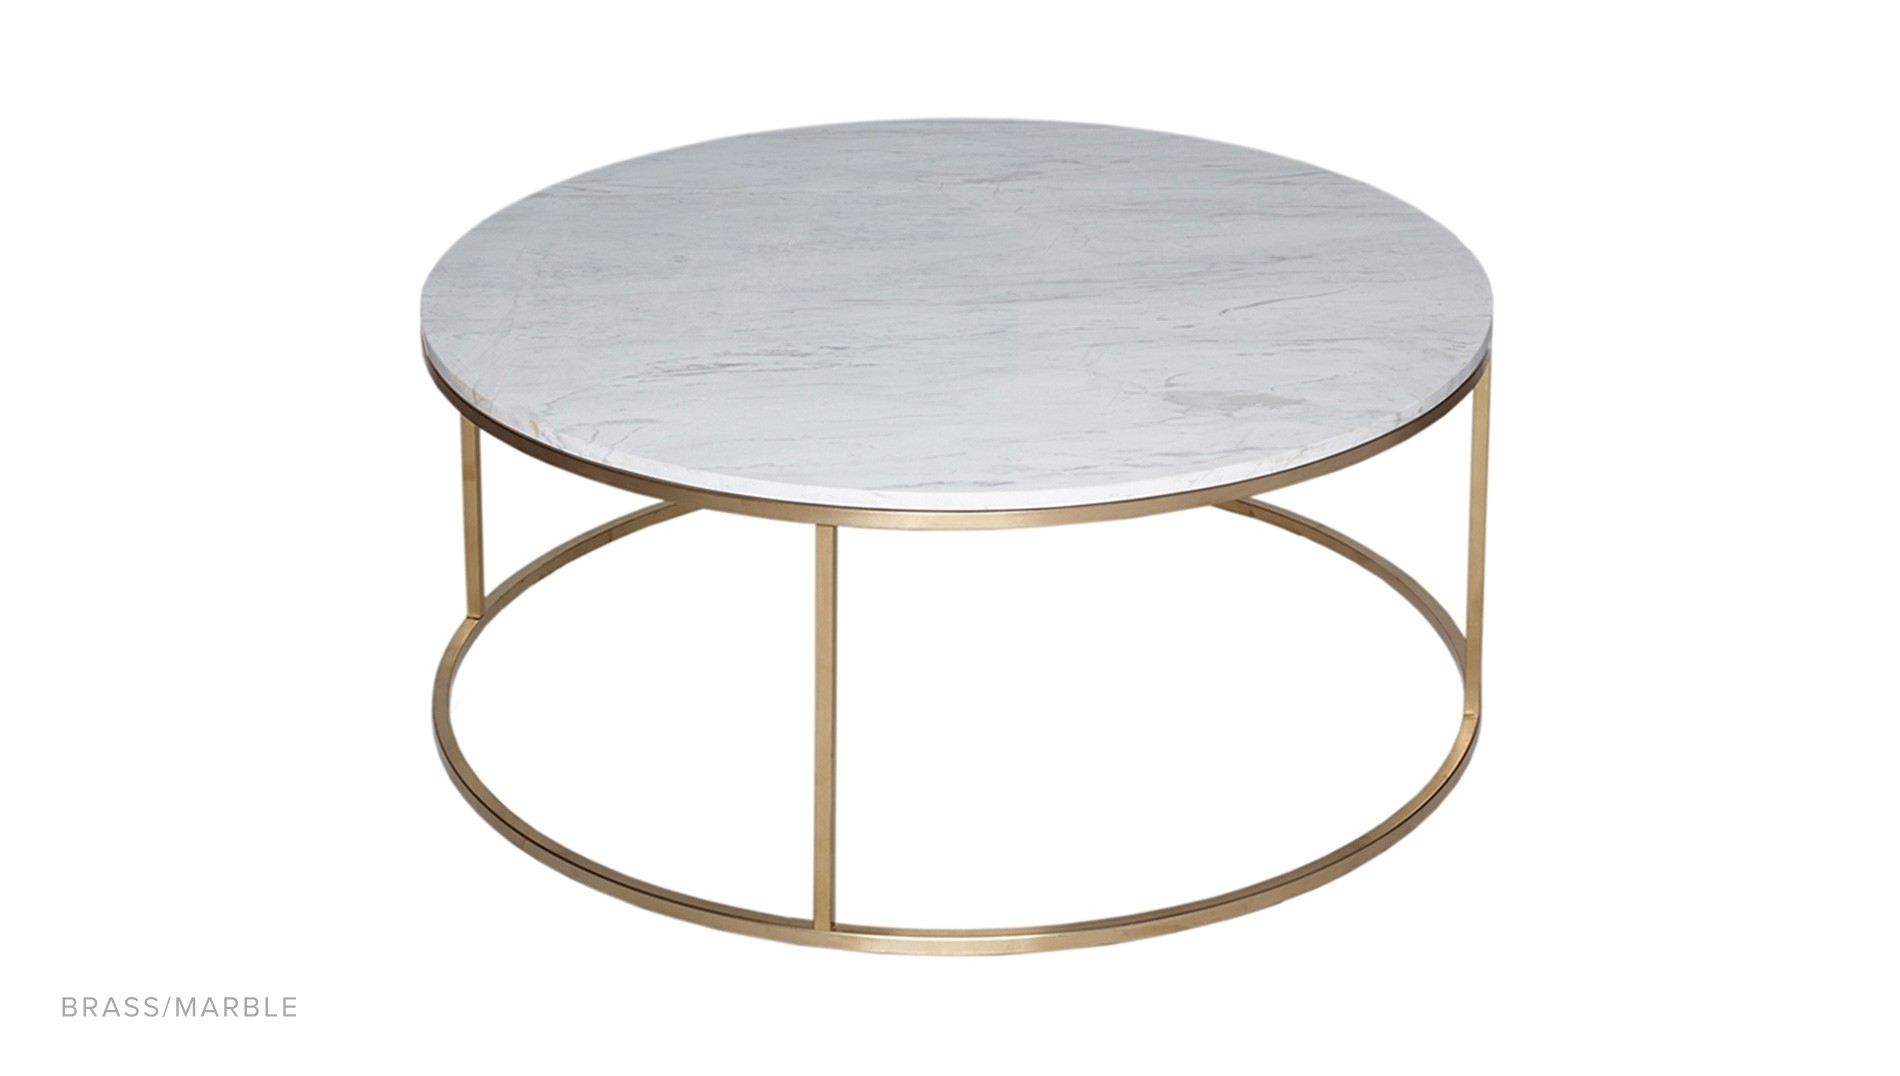 Marble And Metal Coffee Tables Cozy Home 1900×1076 Attachment Throughout Smart Round Marble Brass Coffee Tables (View 21 of 30)